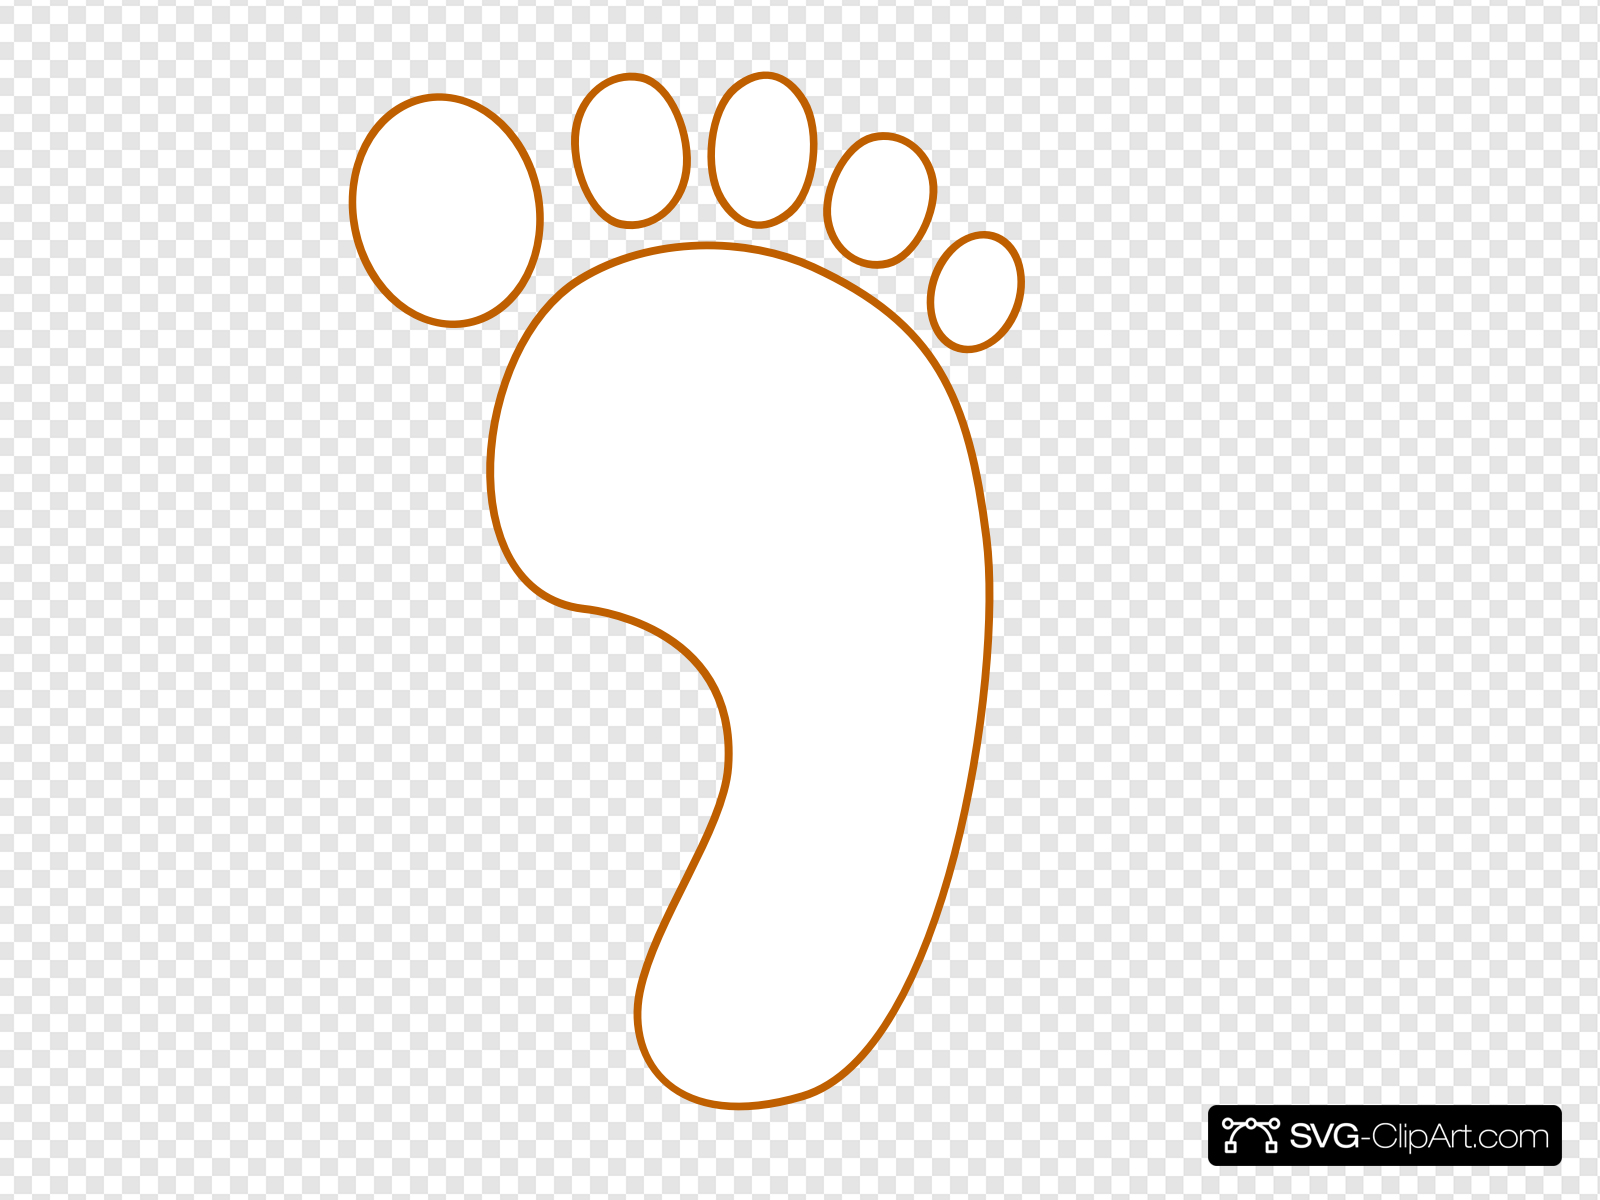 Footprint Clip art, Icon and SVG.